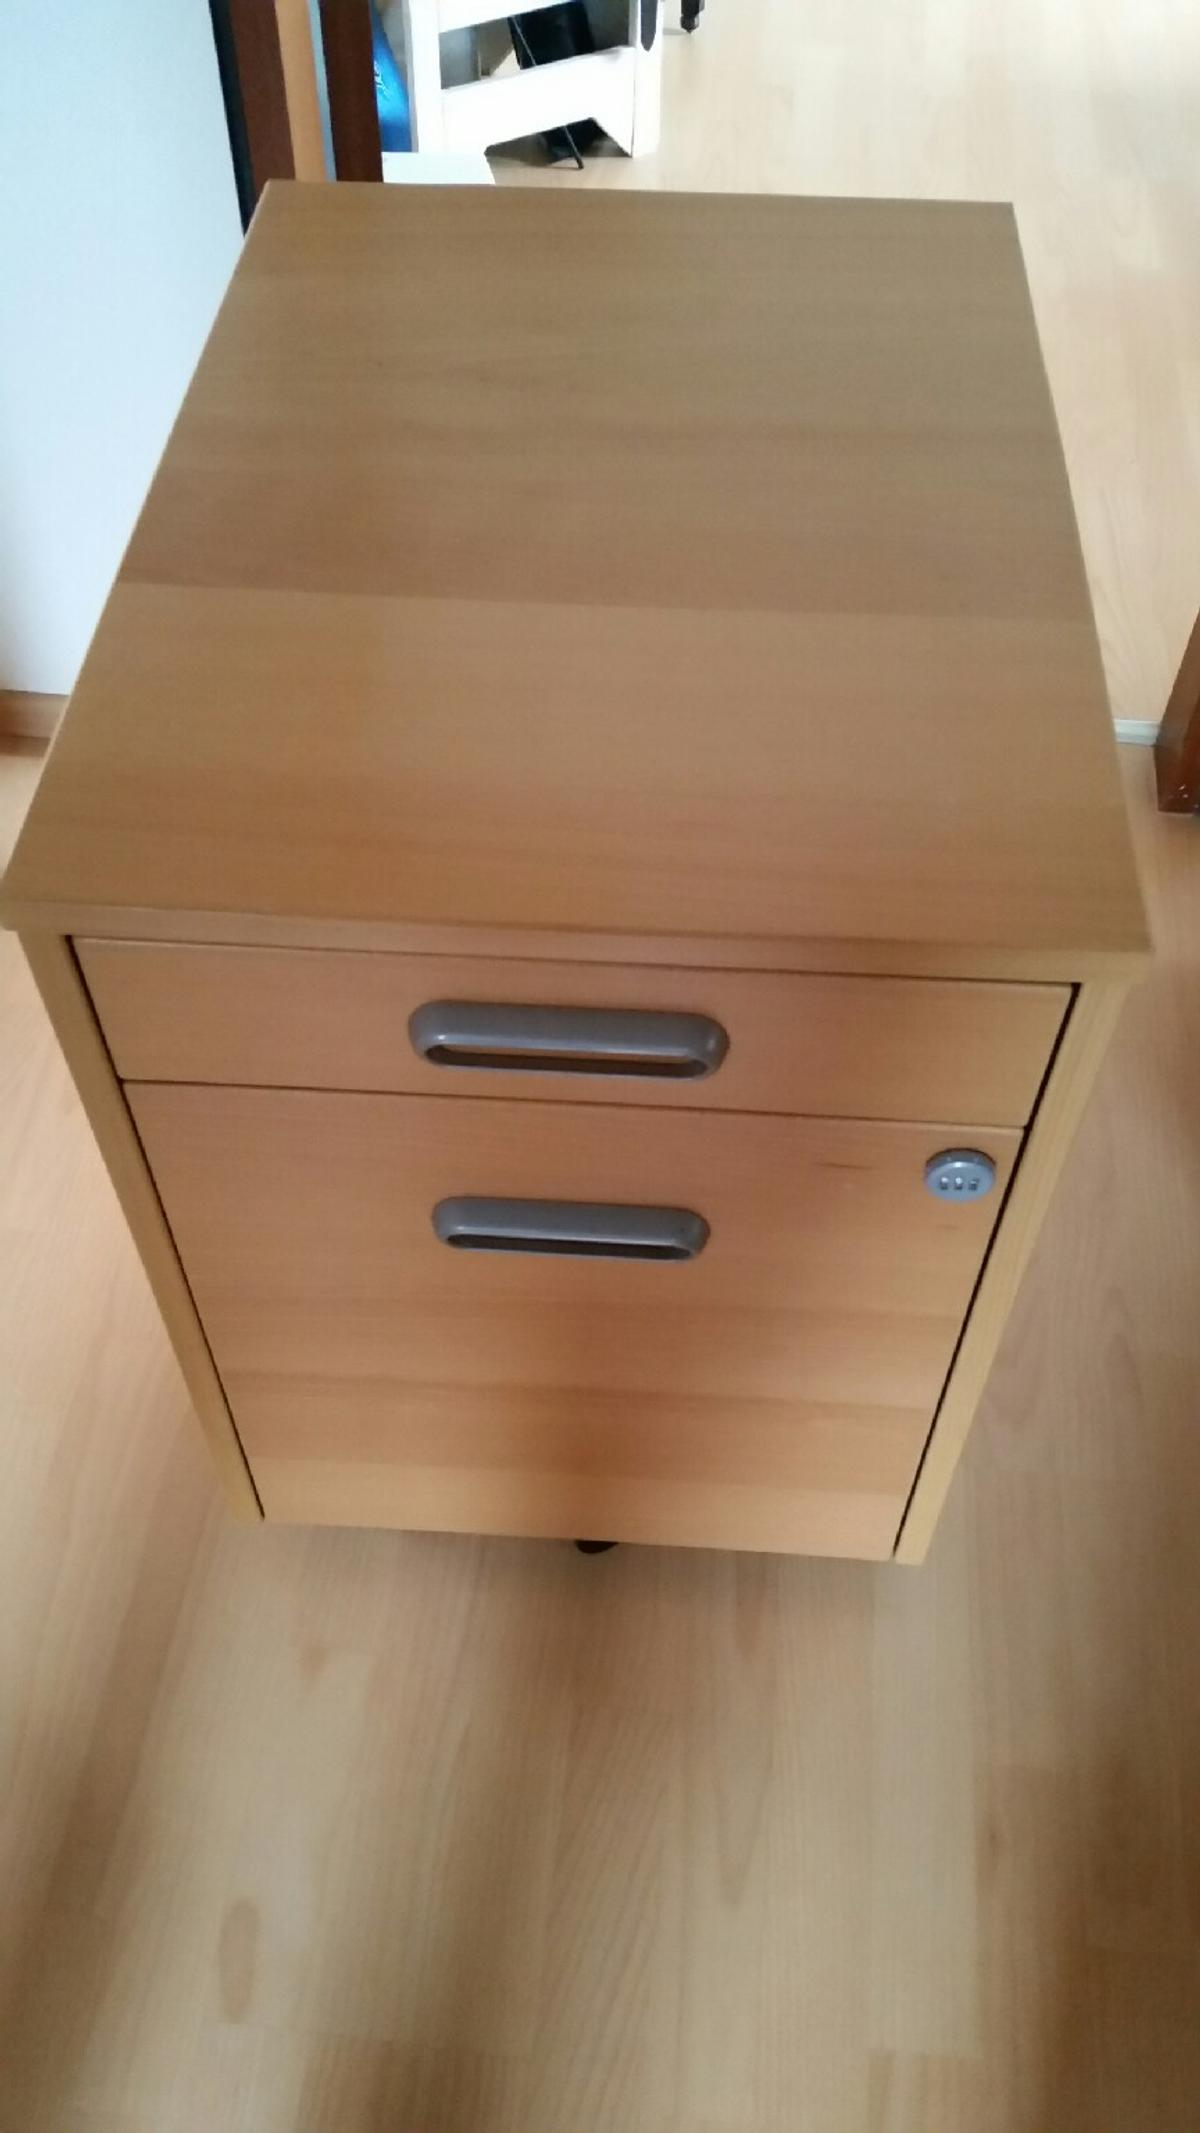 Ikea Galant Rollcontainer Birke In 69181 Leimen For 30 00 For Sale Shpock